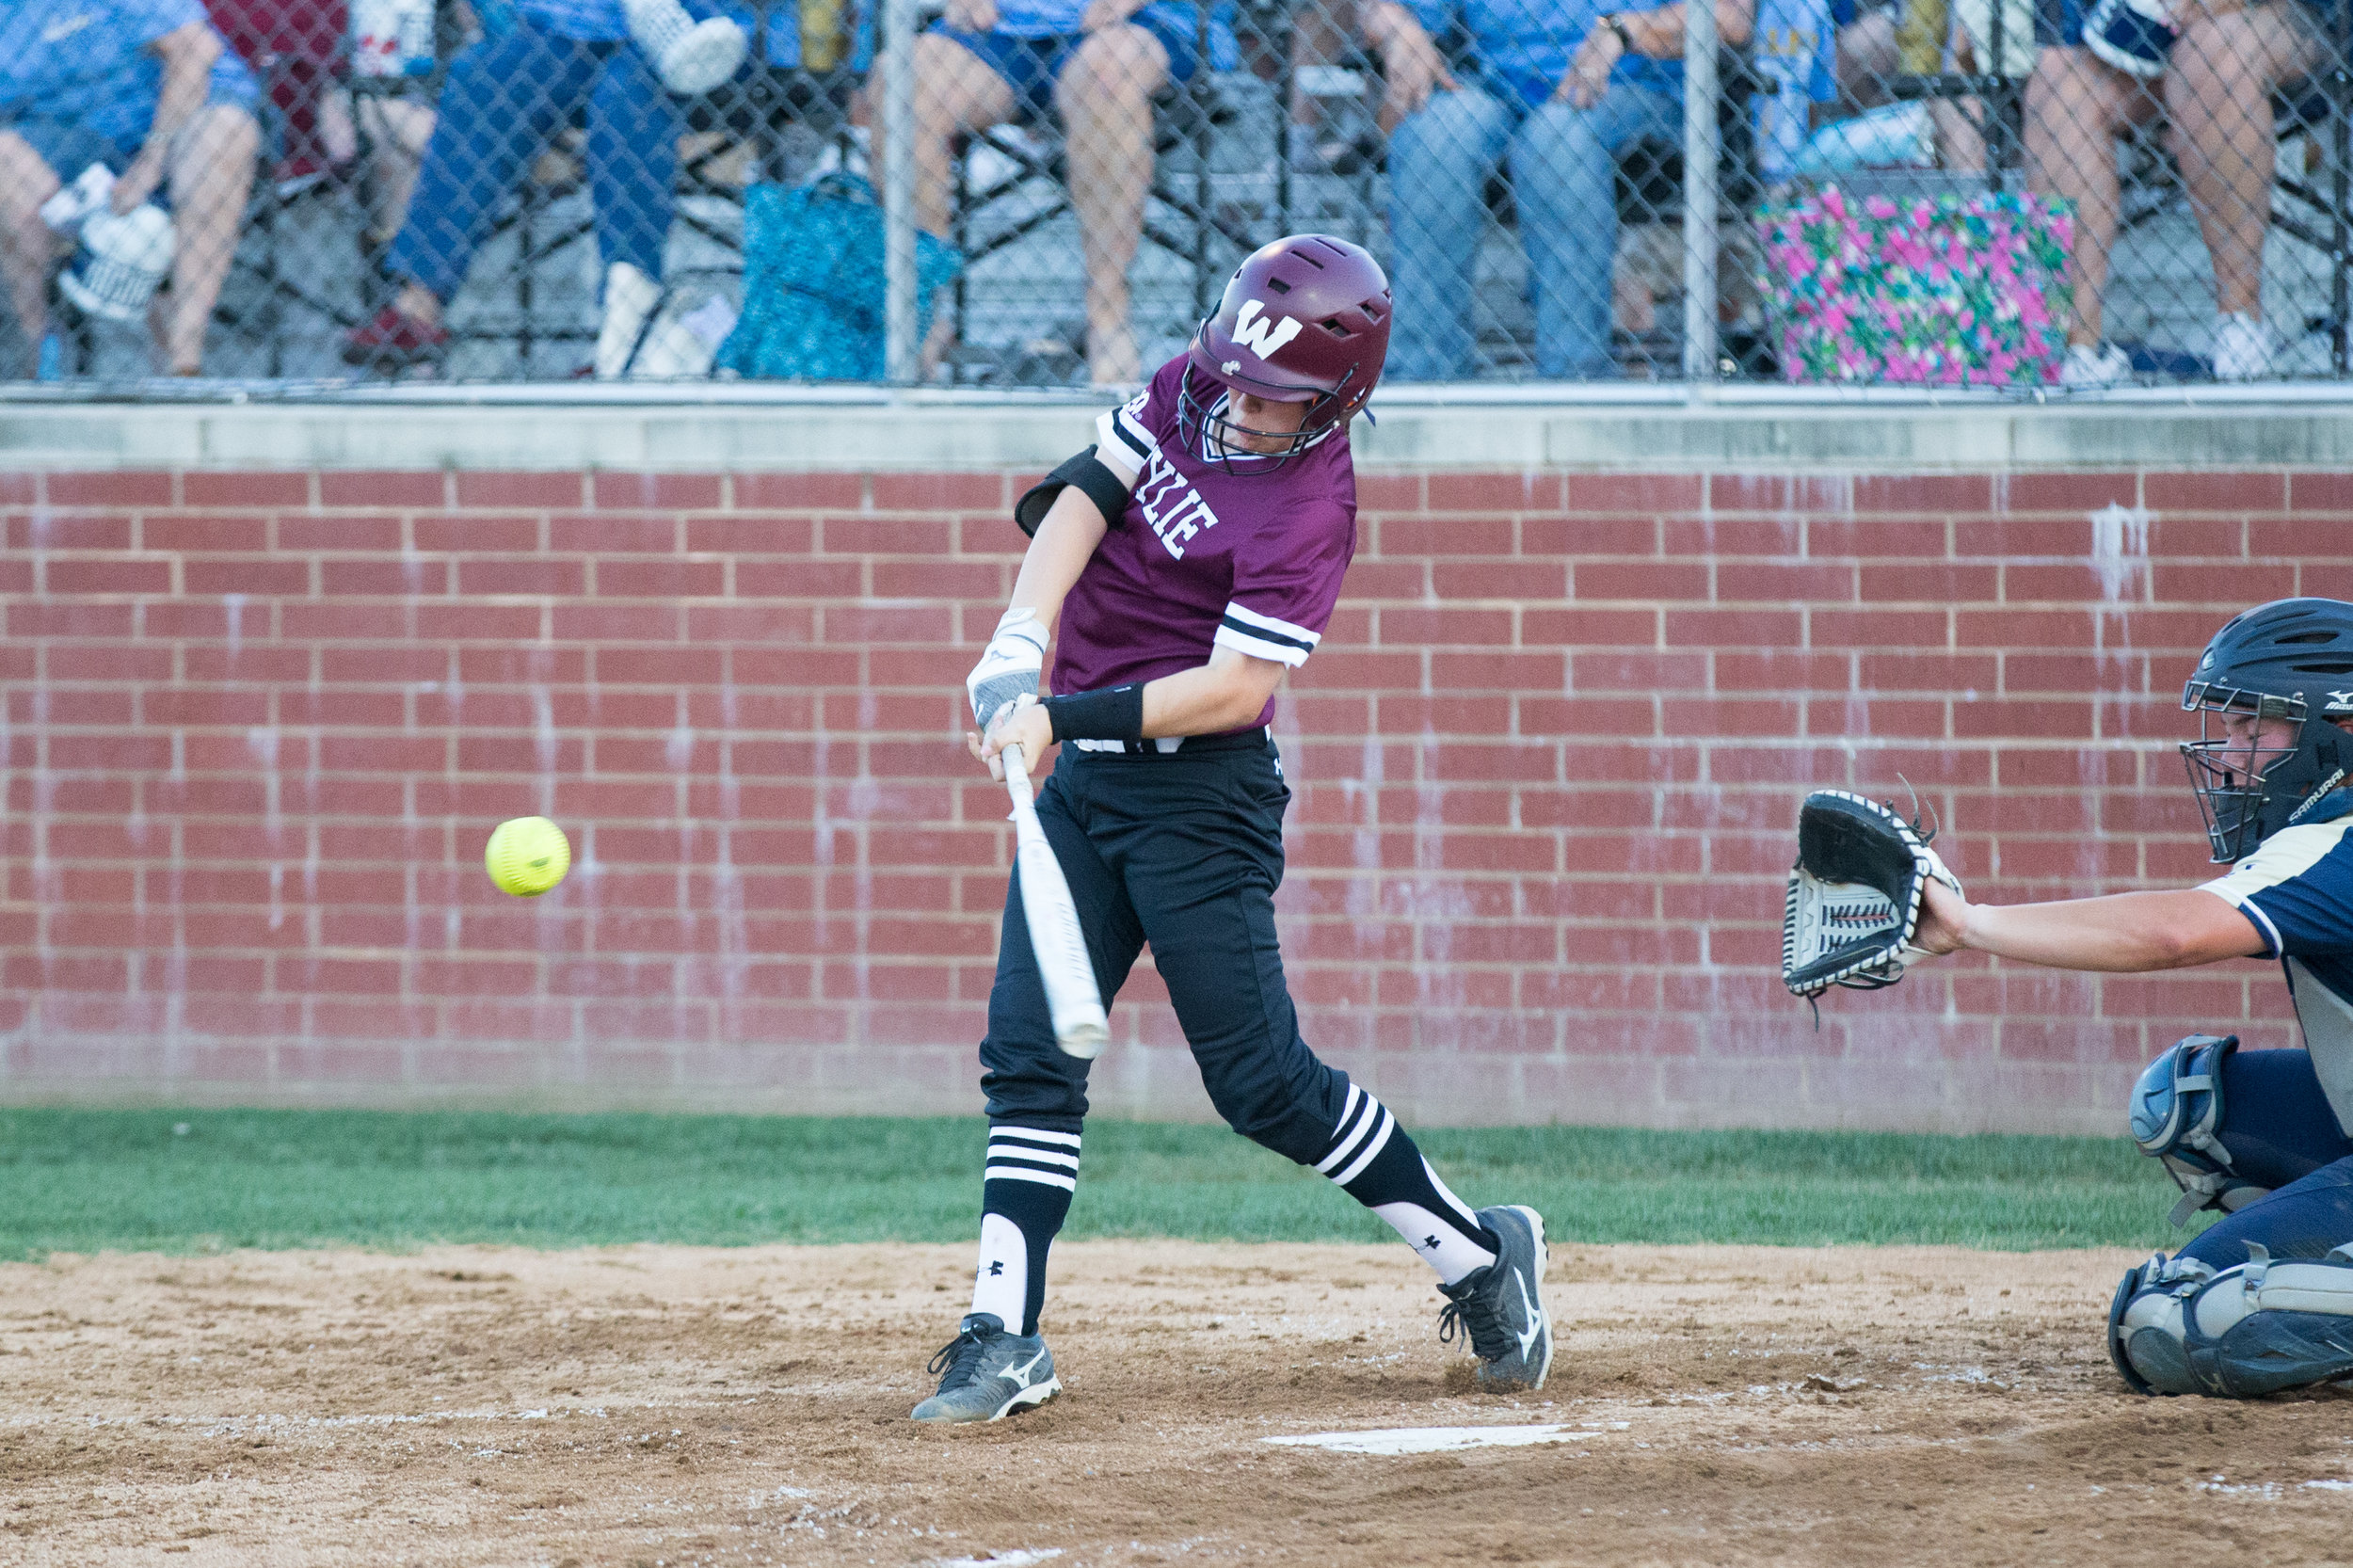 5_18 Wylie Softball-148.jpg